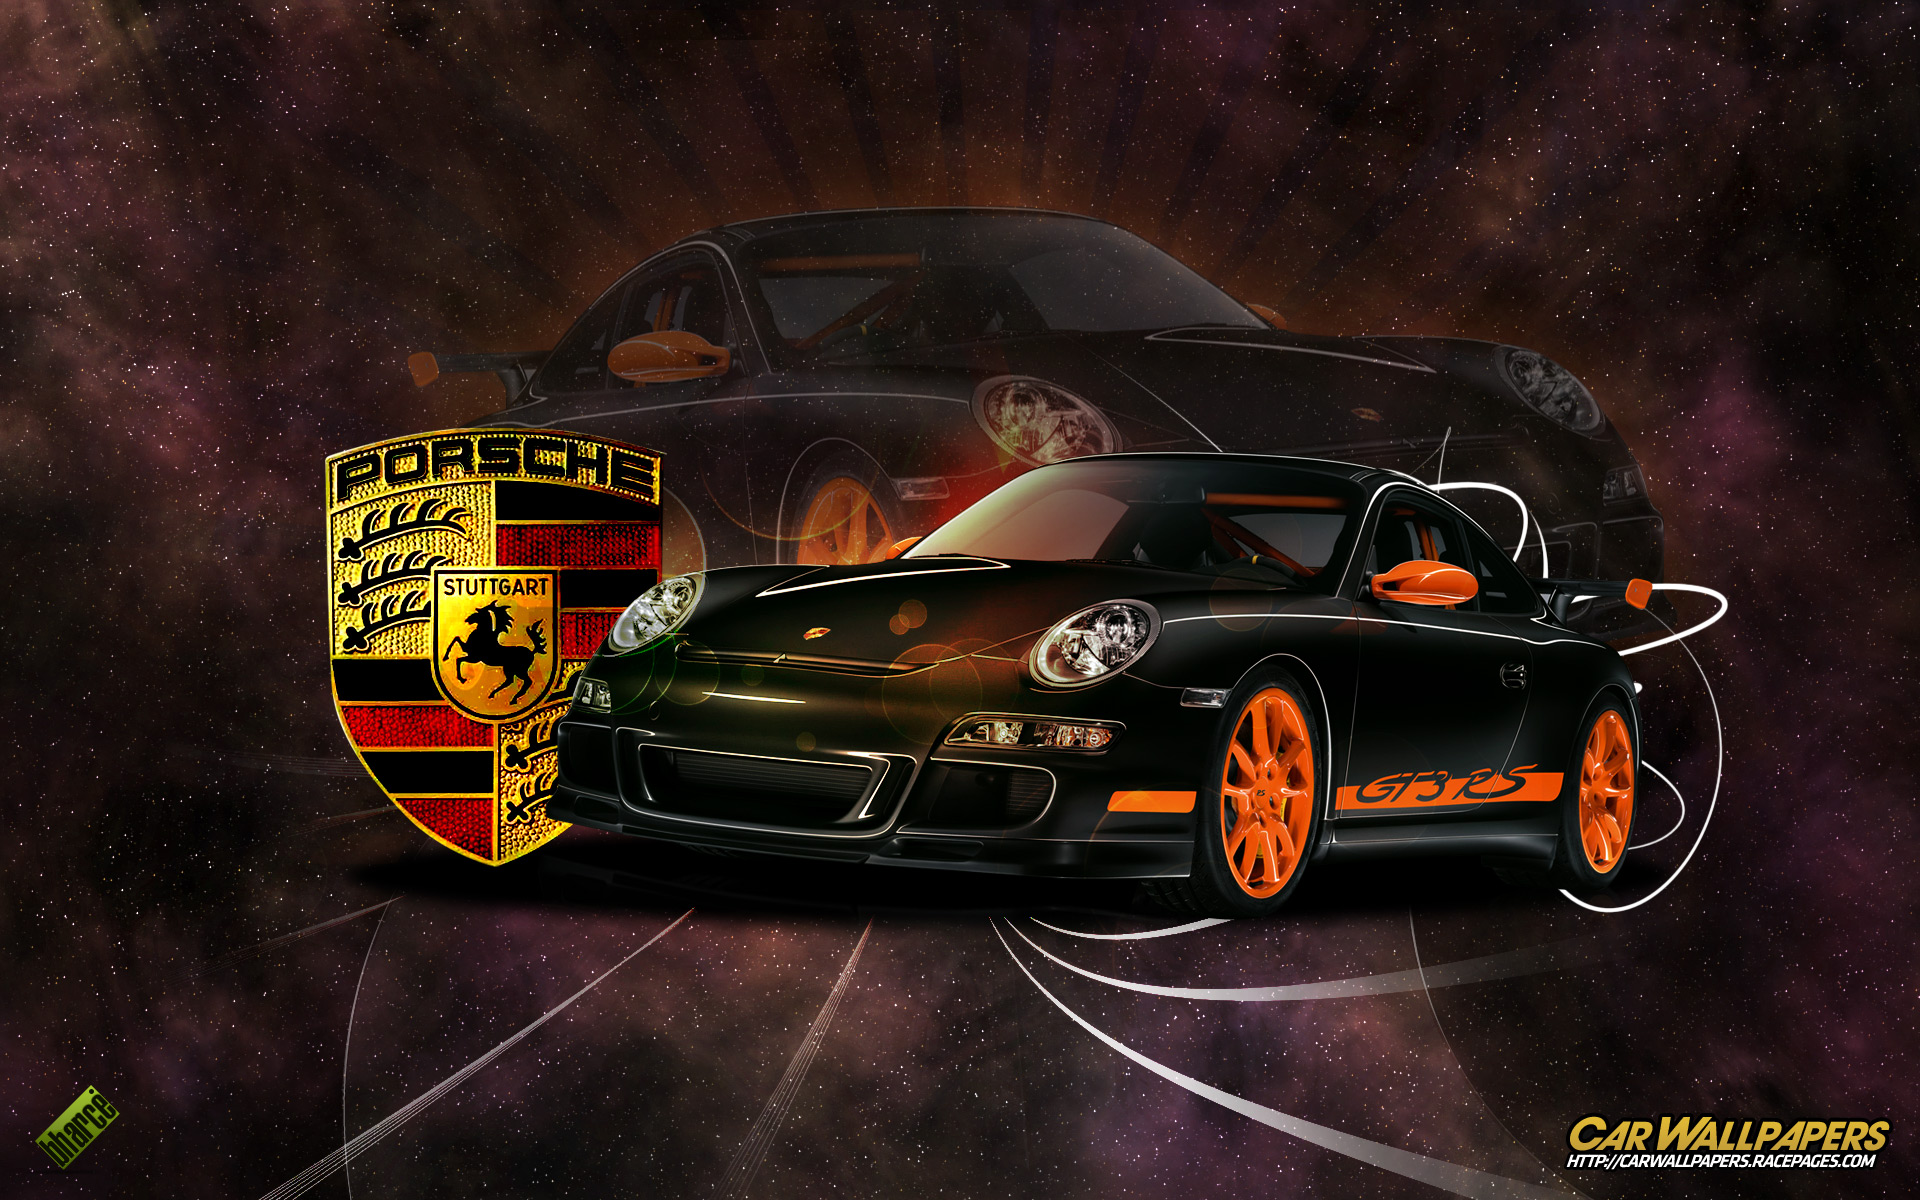 Download Auto And Vehicles Porsche Logo Wallpaper For Mobile Phone 1920x1200